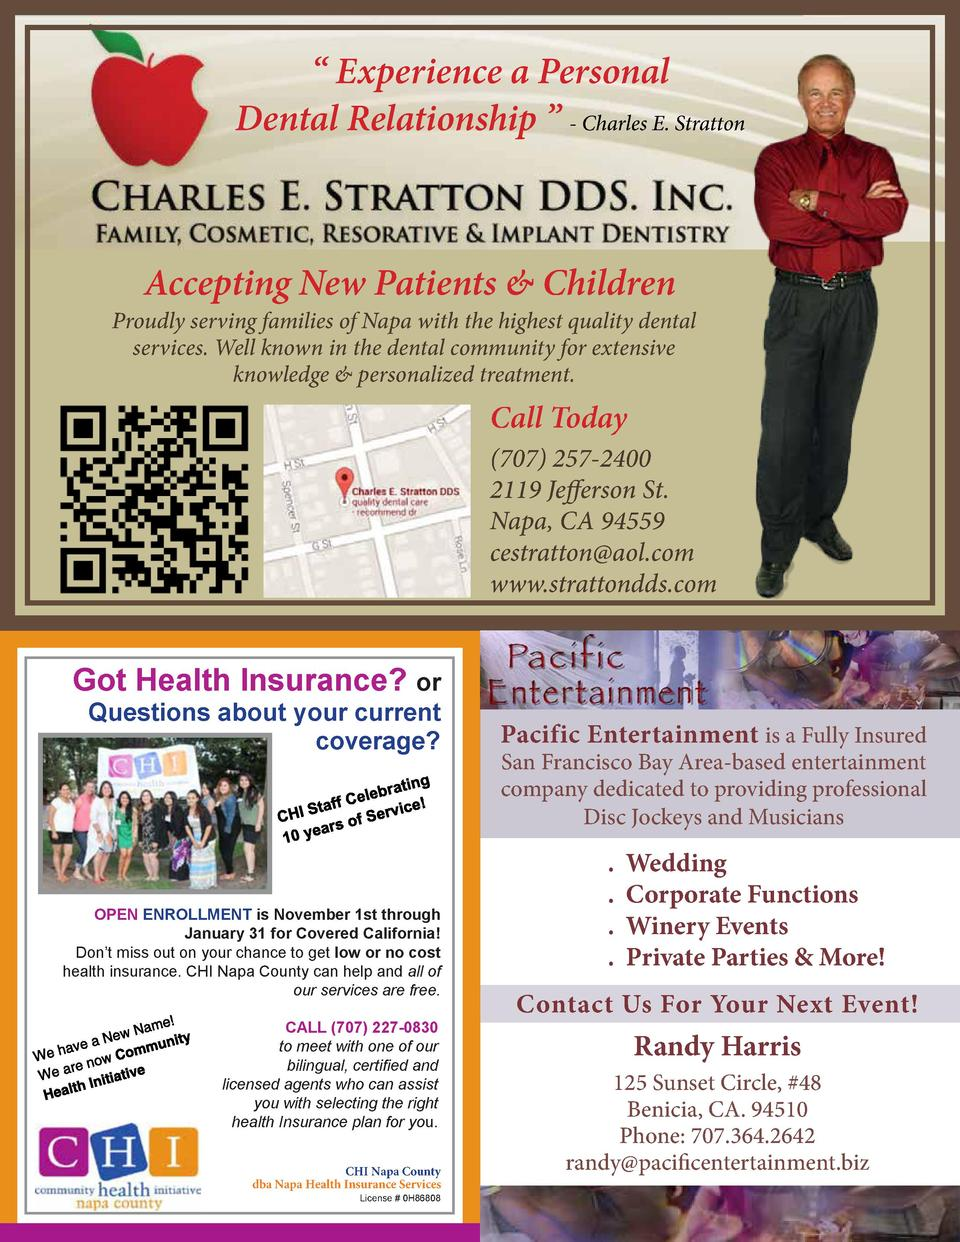 Experience a Personal Dental Relationship     - Charles E. Stratton  Accepting New Patients   Children  Proudly servin...